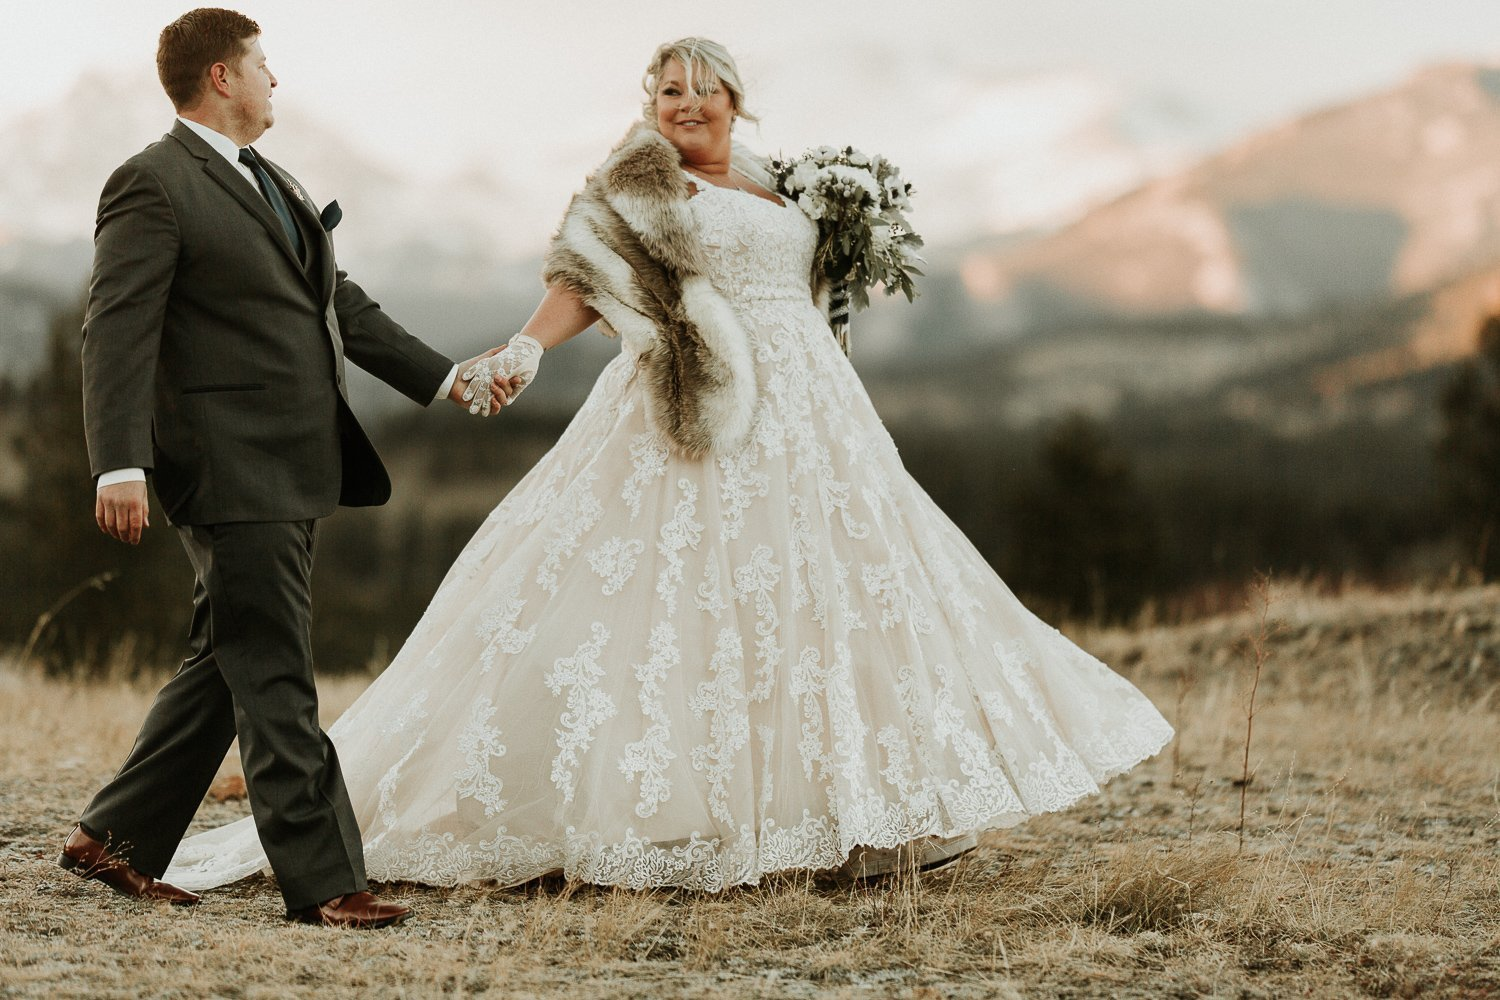 ESTES PARK INTIMATE WEDDING I ROCKY MOUNTAIN INTIMATE WEDDING |YMCA INTIMATE WEDDING | JEN + TONE I JUSTYNA E BUTLER PHOTOGRAPHY | ROCKY MOUNTAIN NATIONAL PARK INTIMATE WEDDING |COLORADO MOUNTAIN INTIMATE WEDDING PHOTOGRAPHER